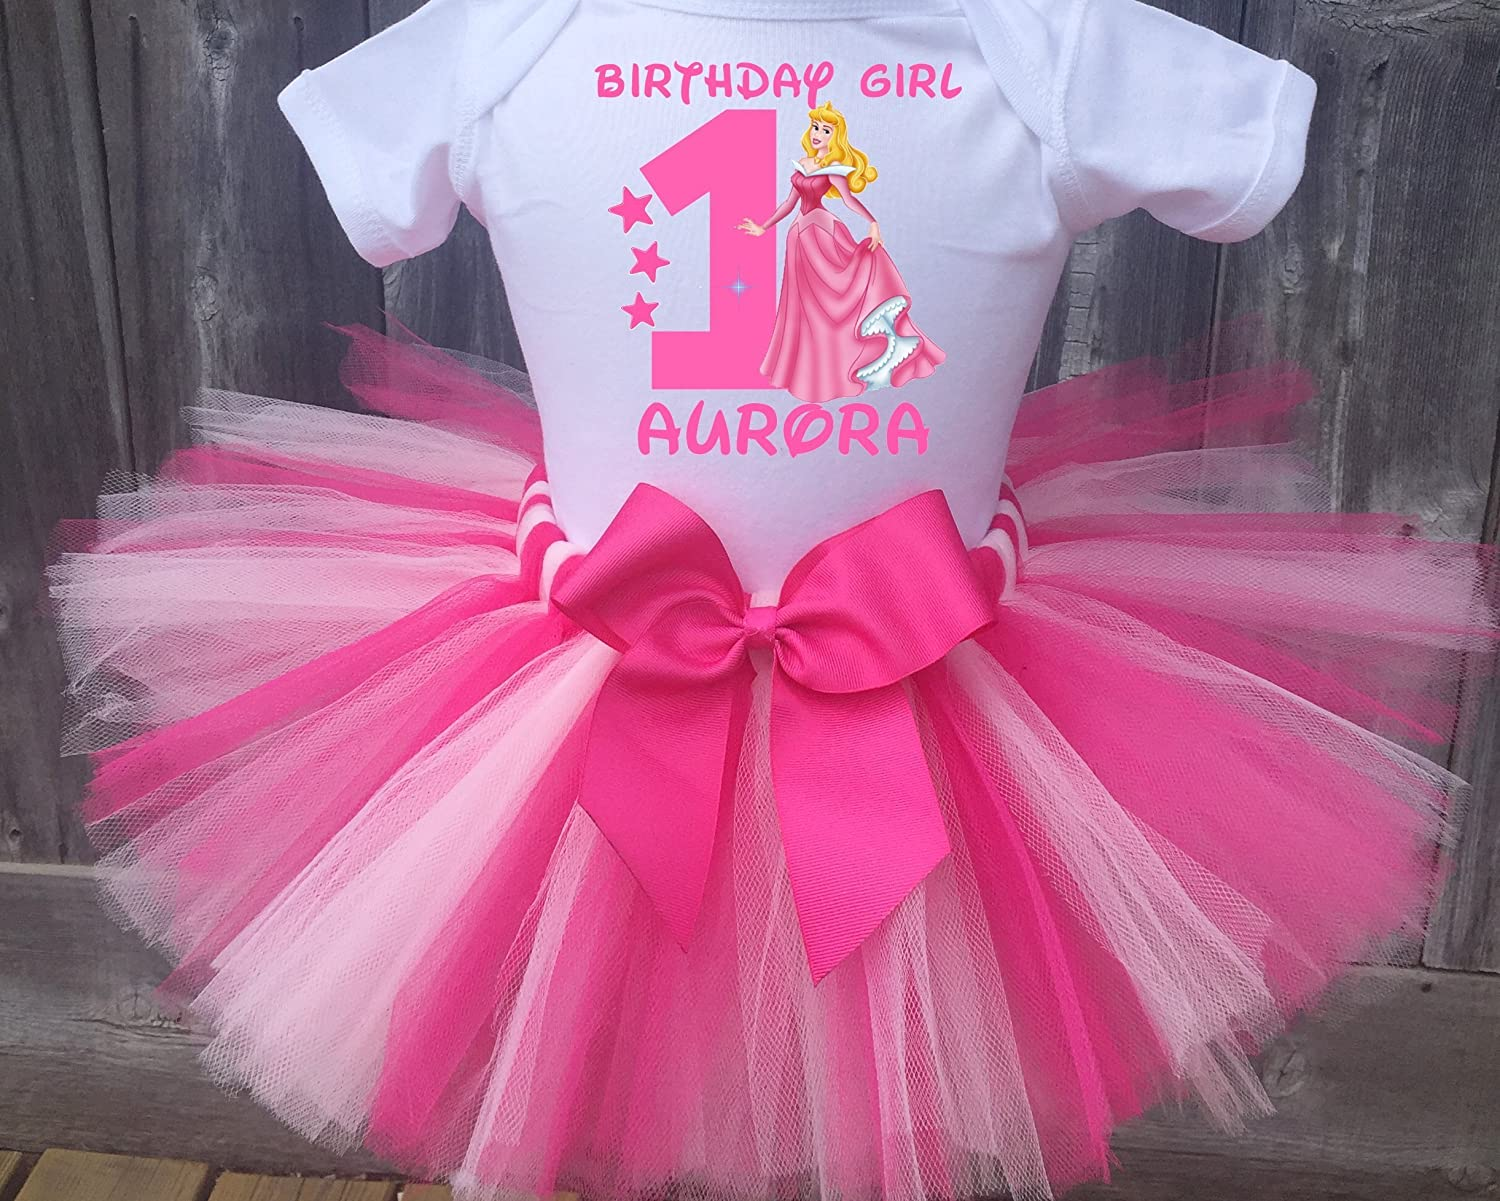 f6ddee092a787 Personalized Sleeping Beauty Aurora birthday tutu outfit. Comes as shown  with Hot Pink and Light Pink tutu and a Hot Pink detachable sash bow.